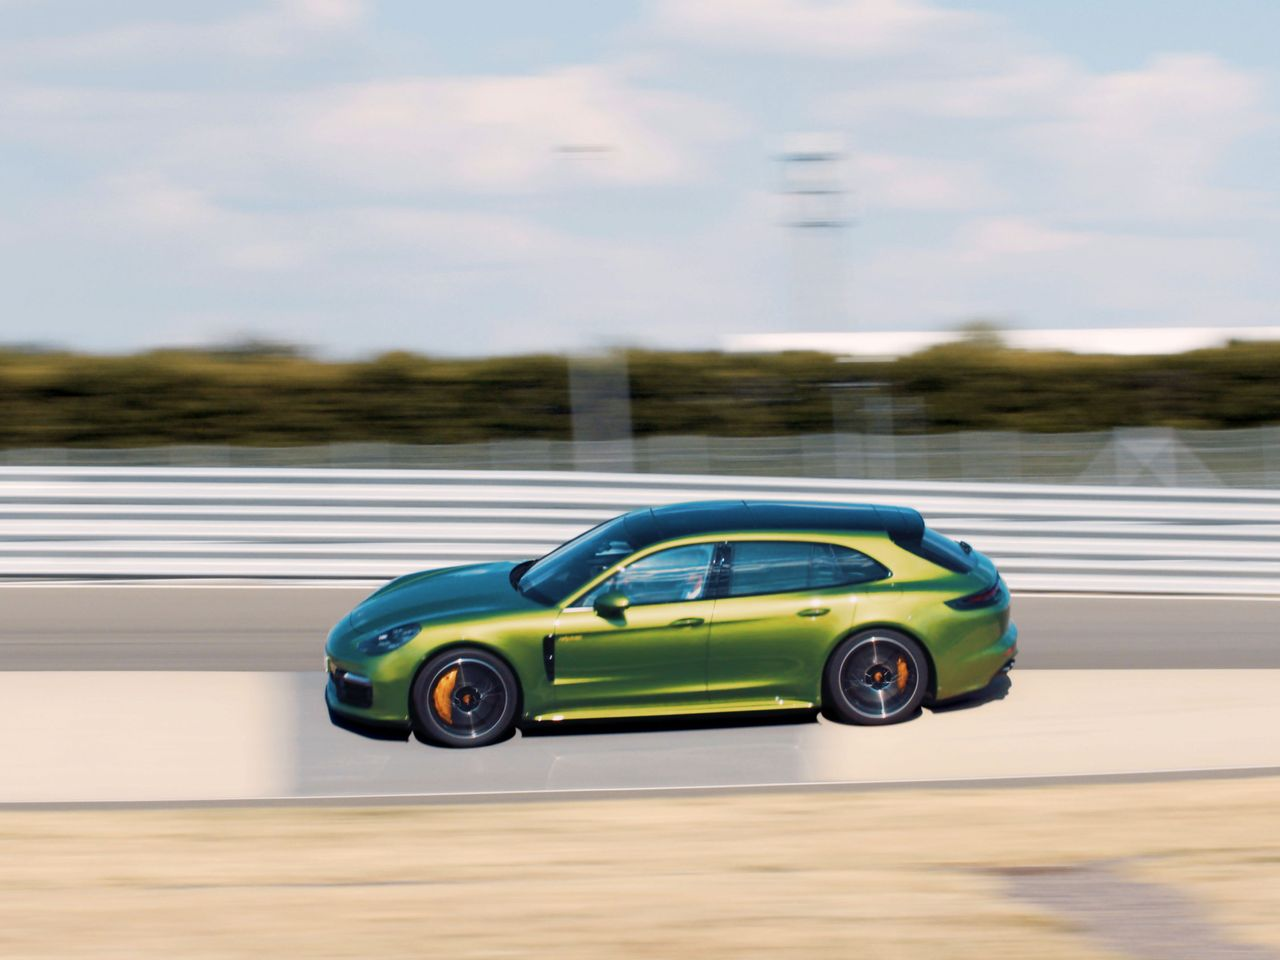 Driving into the Karussell, the driver of the Panamera Turbo S E-Hybrid Sport Turismo finds the perfect entry point of the turn.